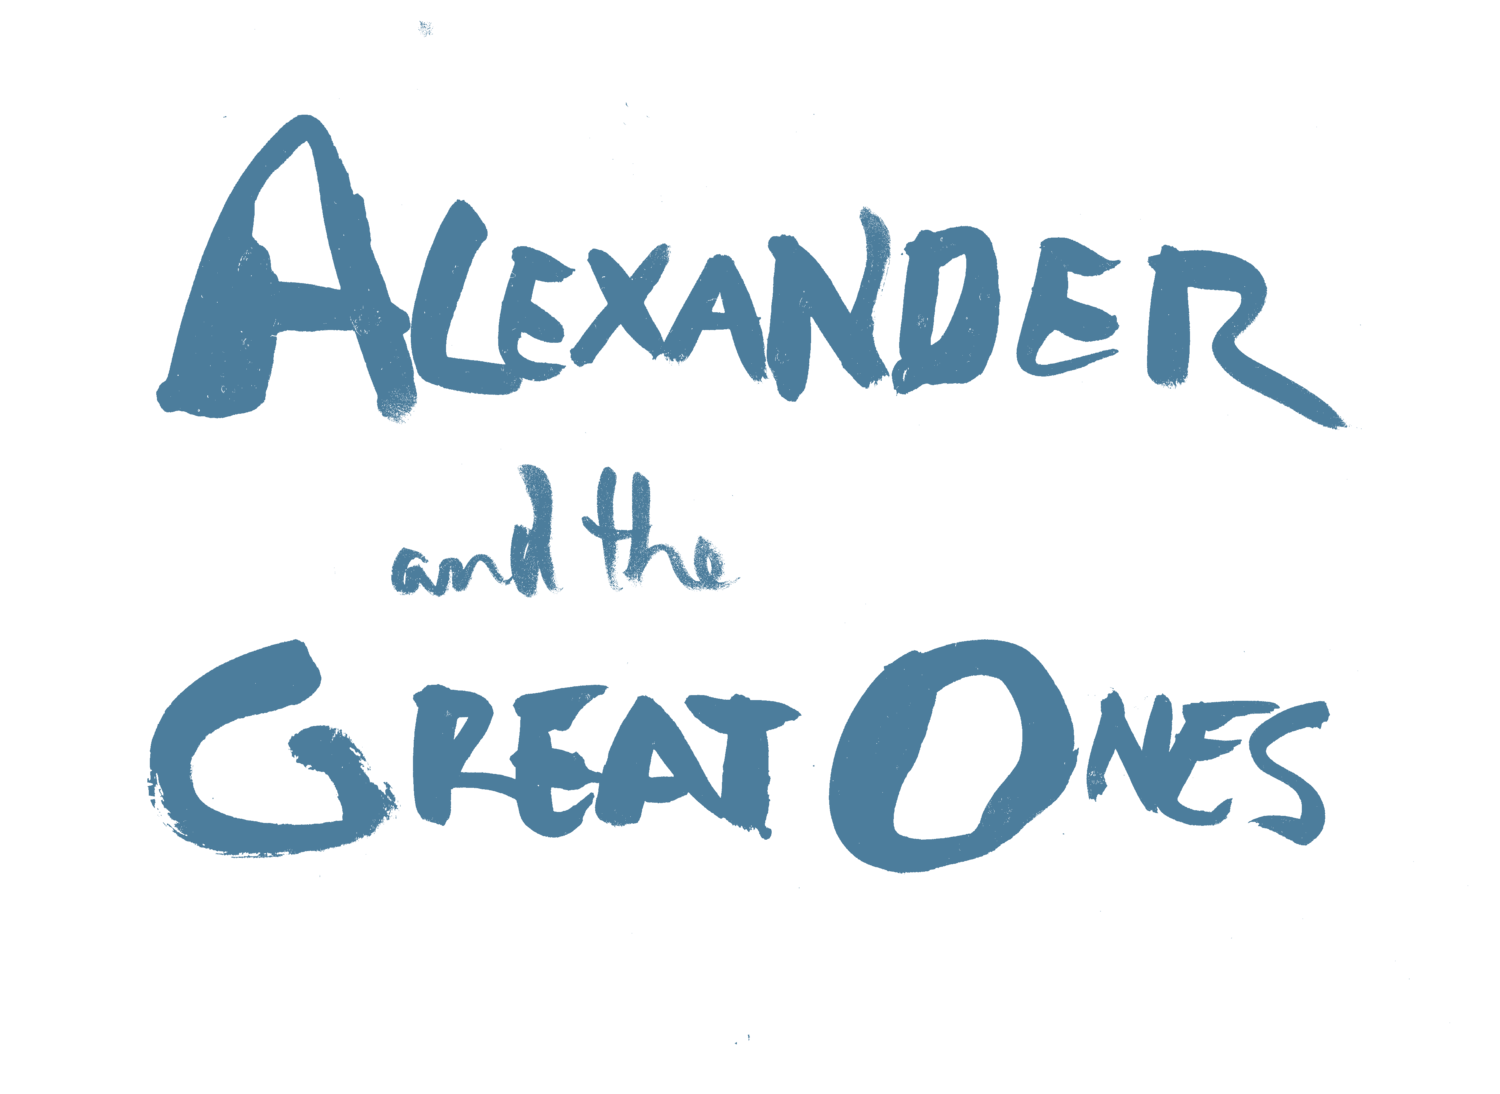 Alexander and the Great Ones